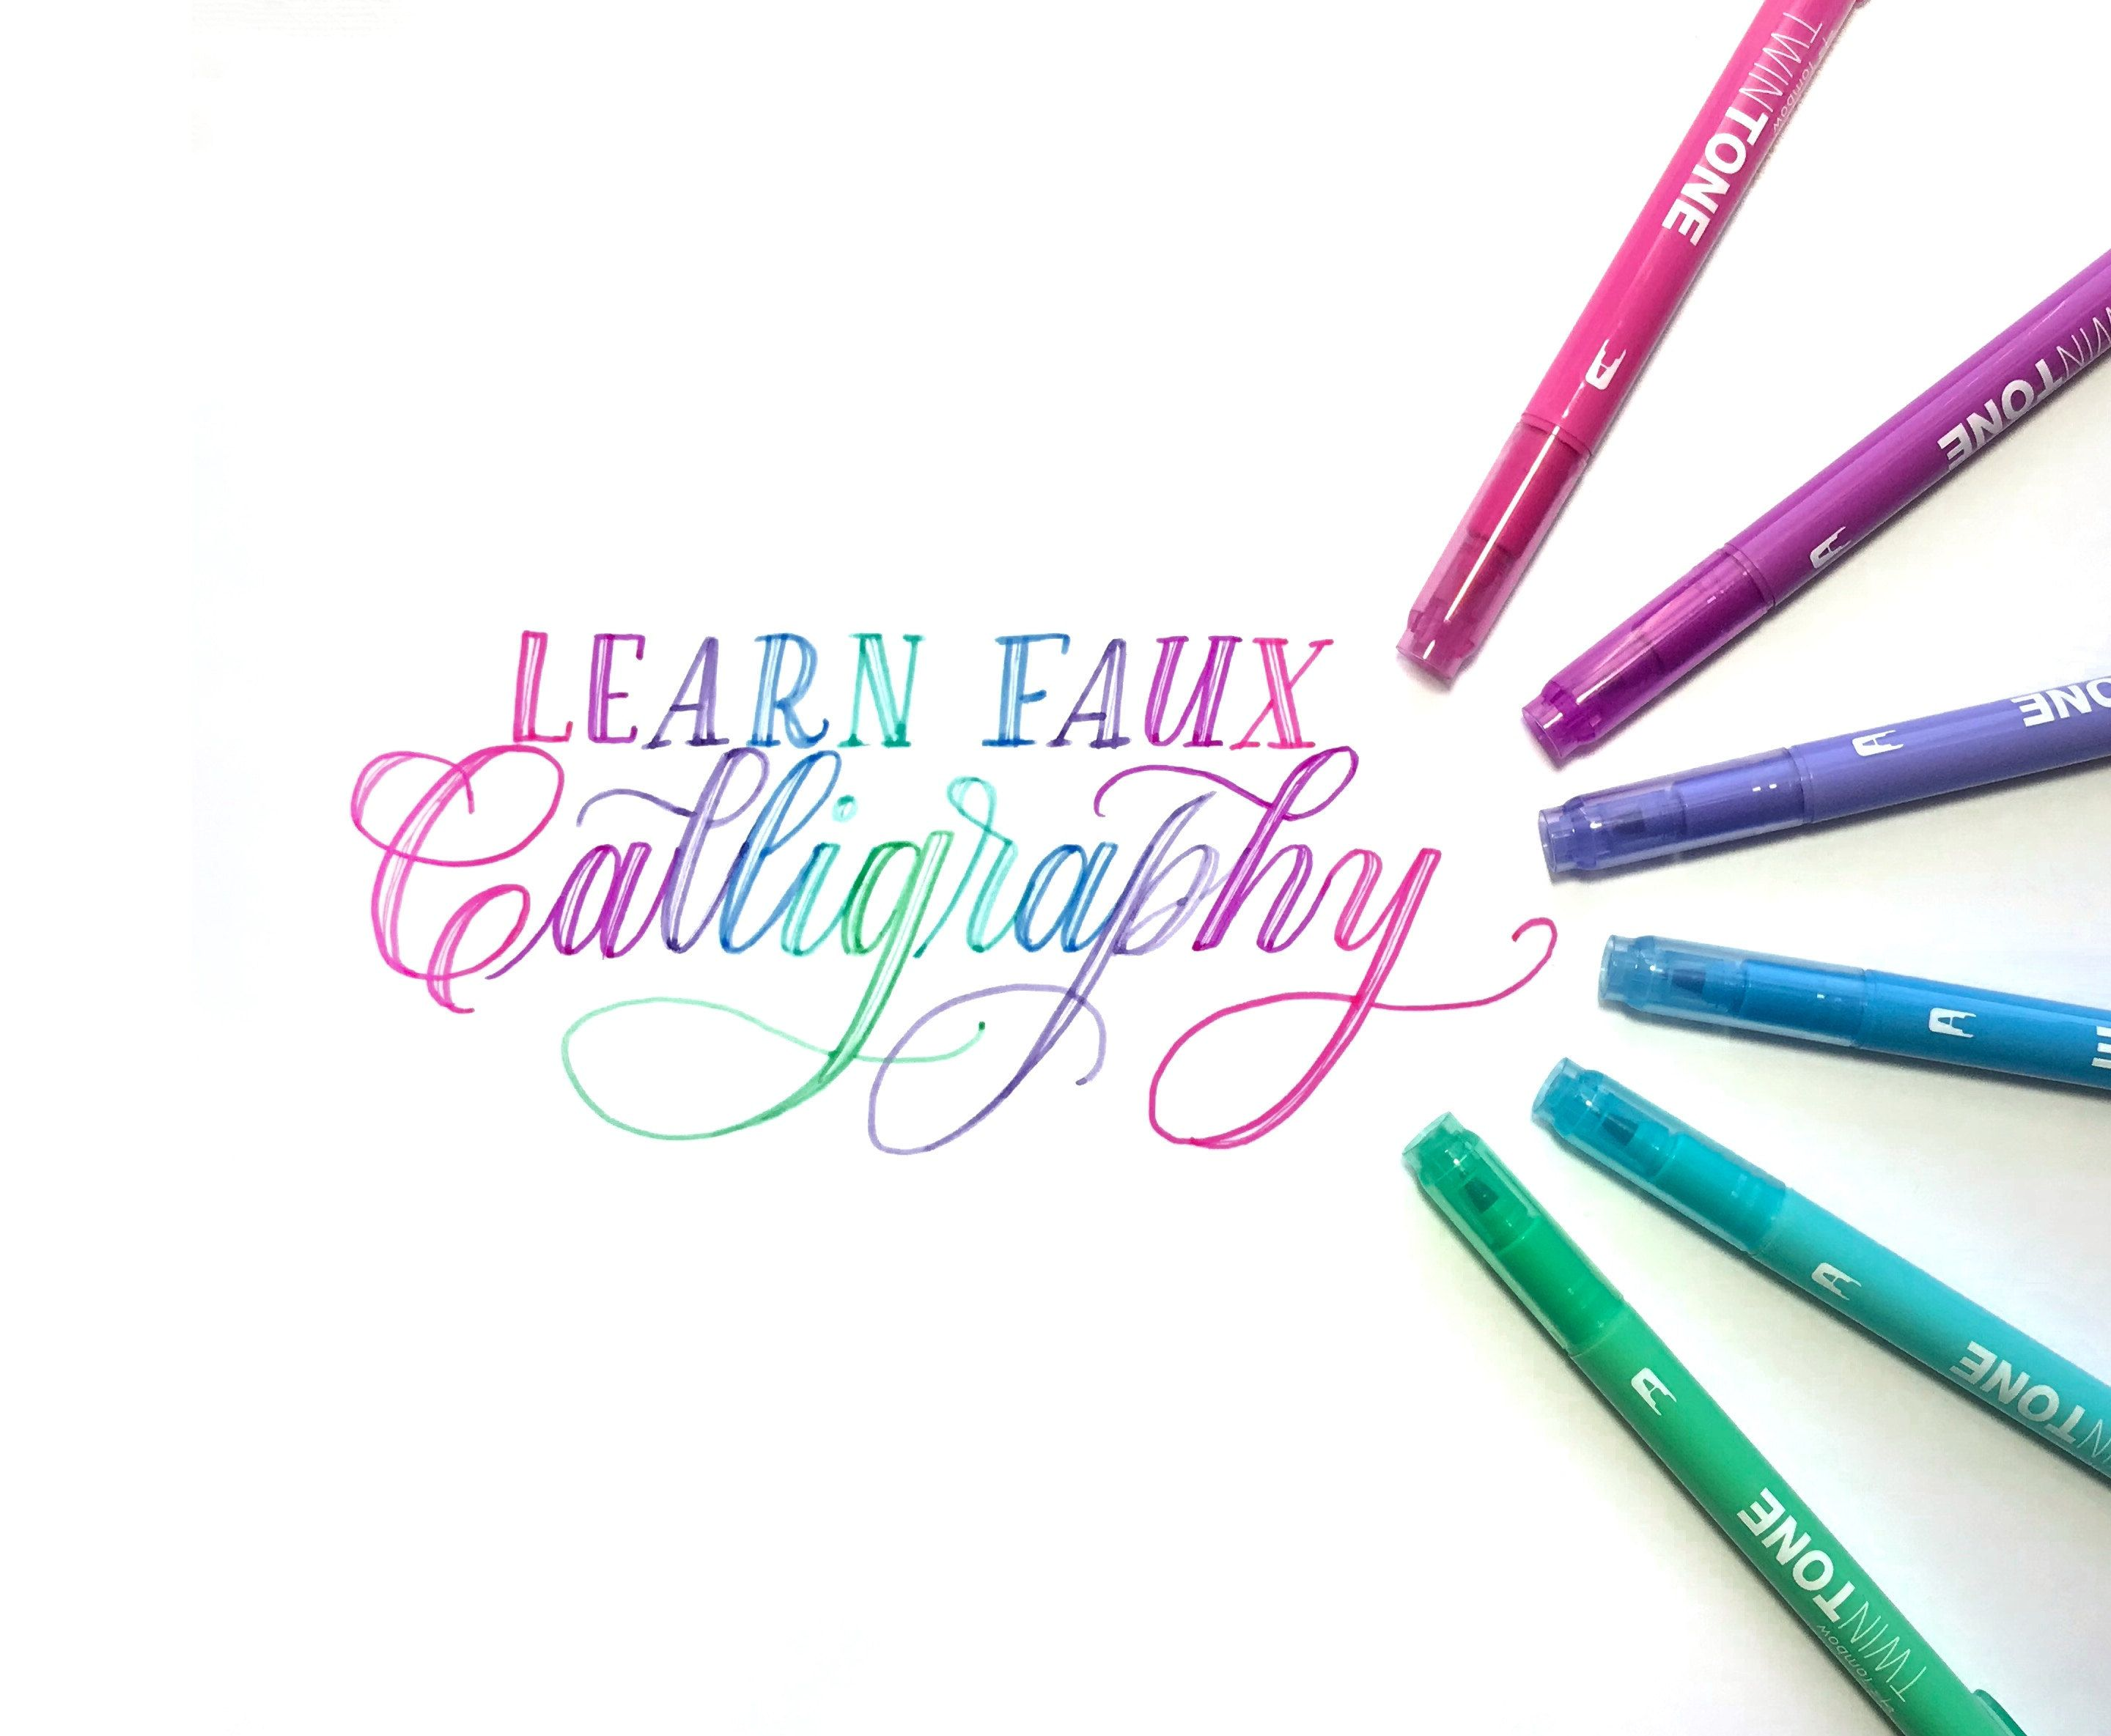 Learn Faux Calligraphy